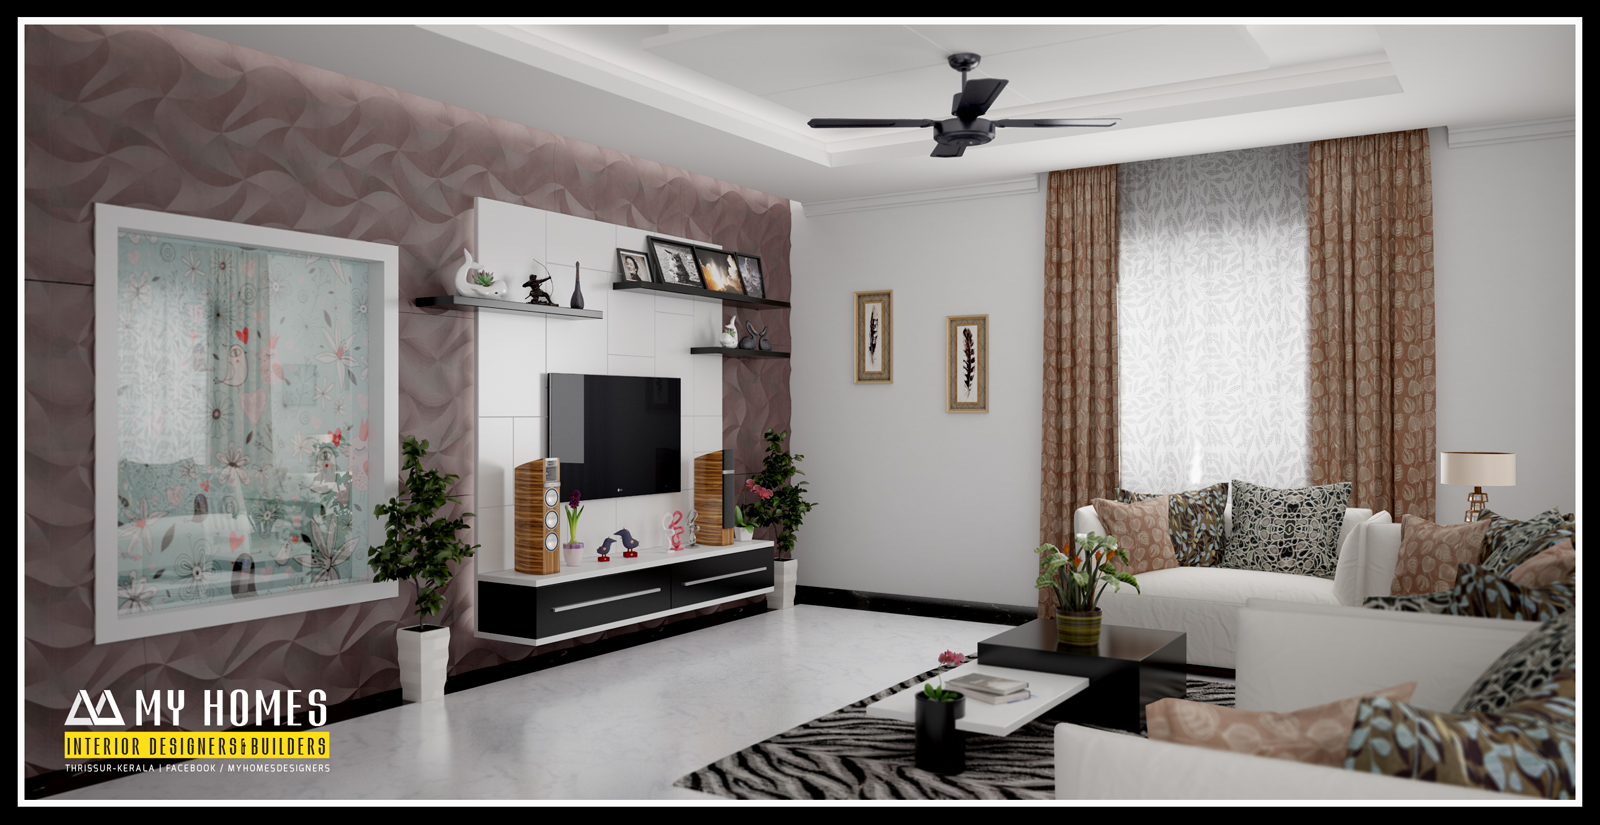 Kerala interior design ideas from designing company thrissur for House interior design photos